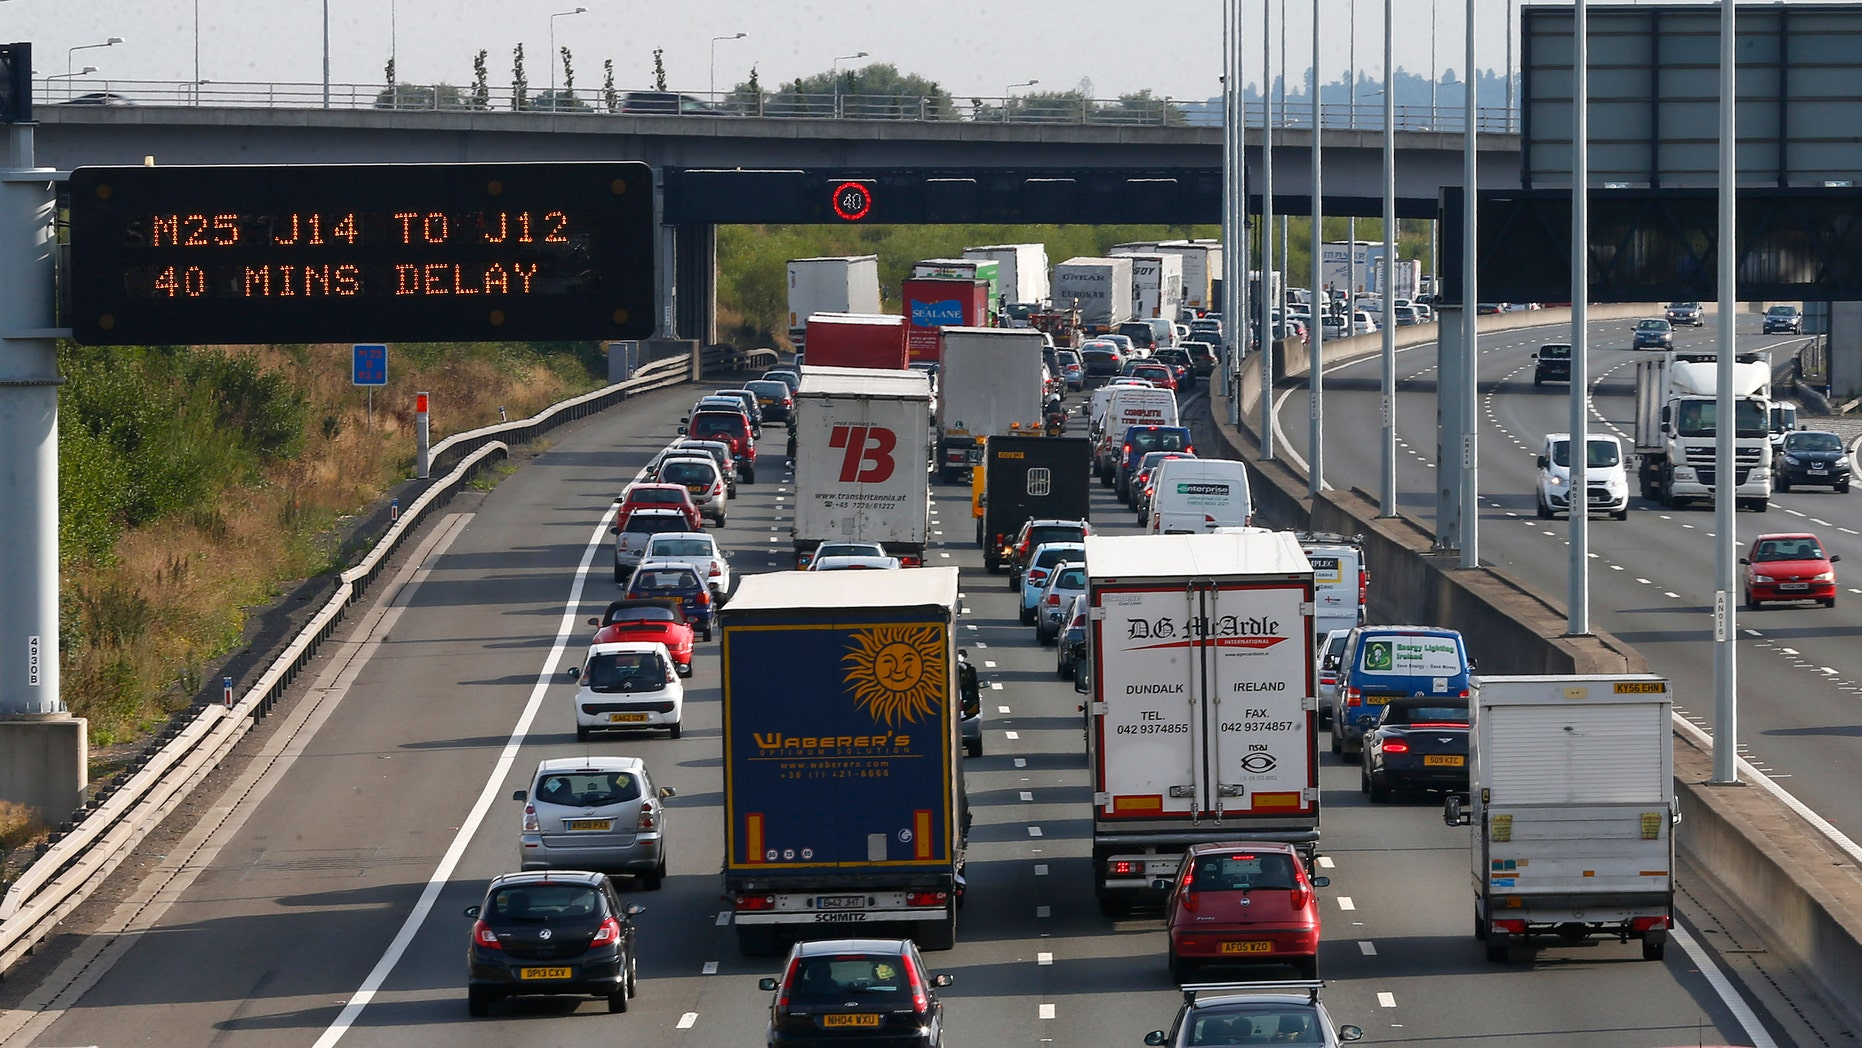 Heavy traffic is seen on the M25 motorway near Heathrow Airport west of London August 16, 2013. REUTERS/Eddie Keogh (BRITAIN - Tags: TRANSPORT TRAVEL) - RTX12O1T